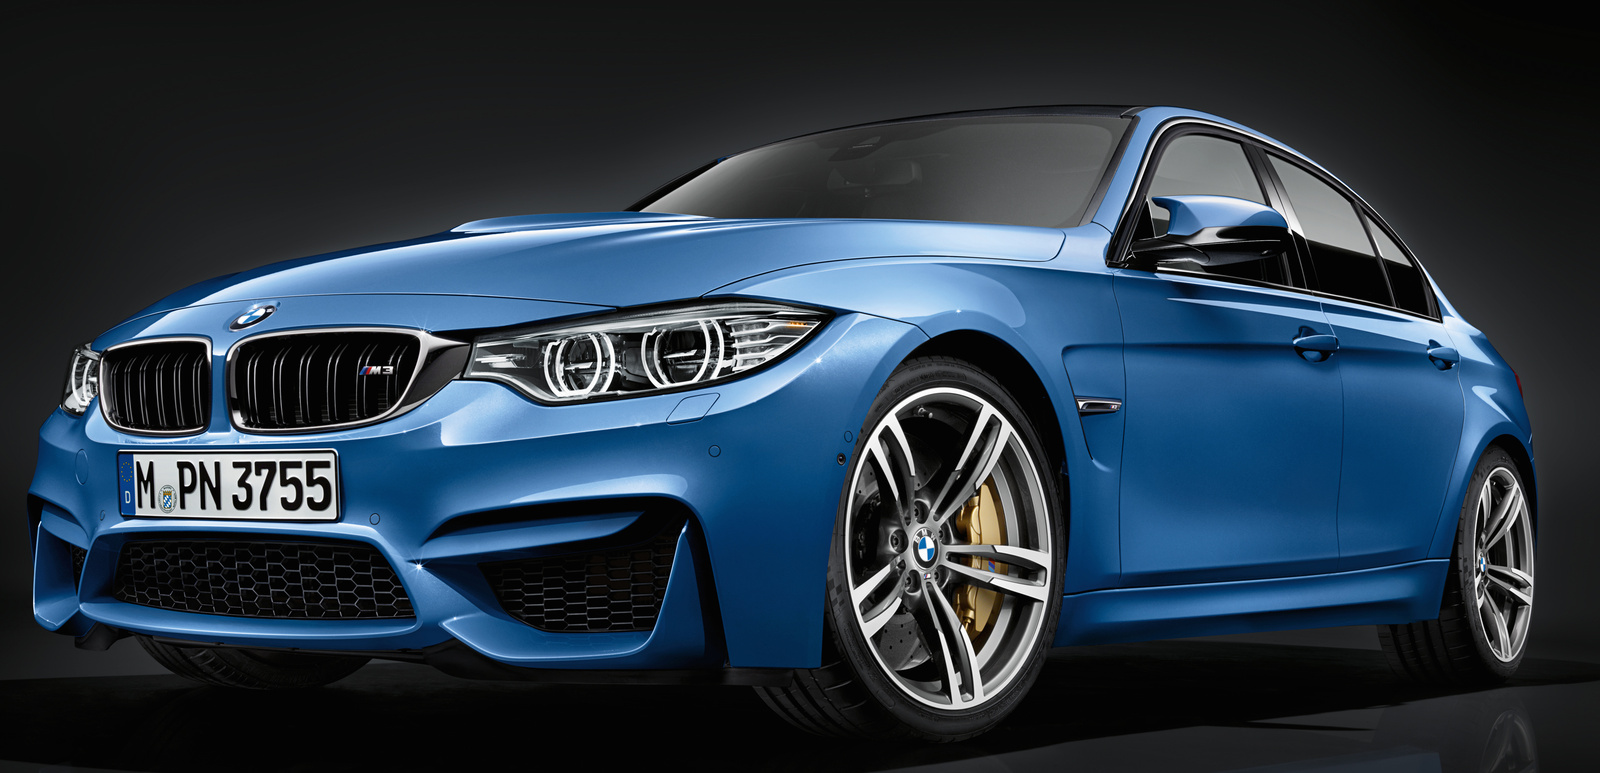 new 2015 2016 bmw m3 for sale pittsburgh pa cargurus. Black Bedroom Furniture Sets. Home Design Ideas